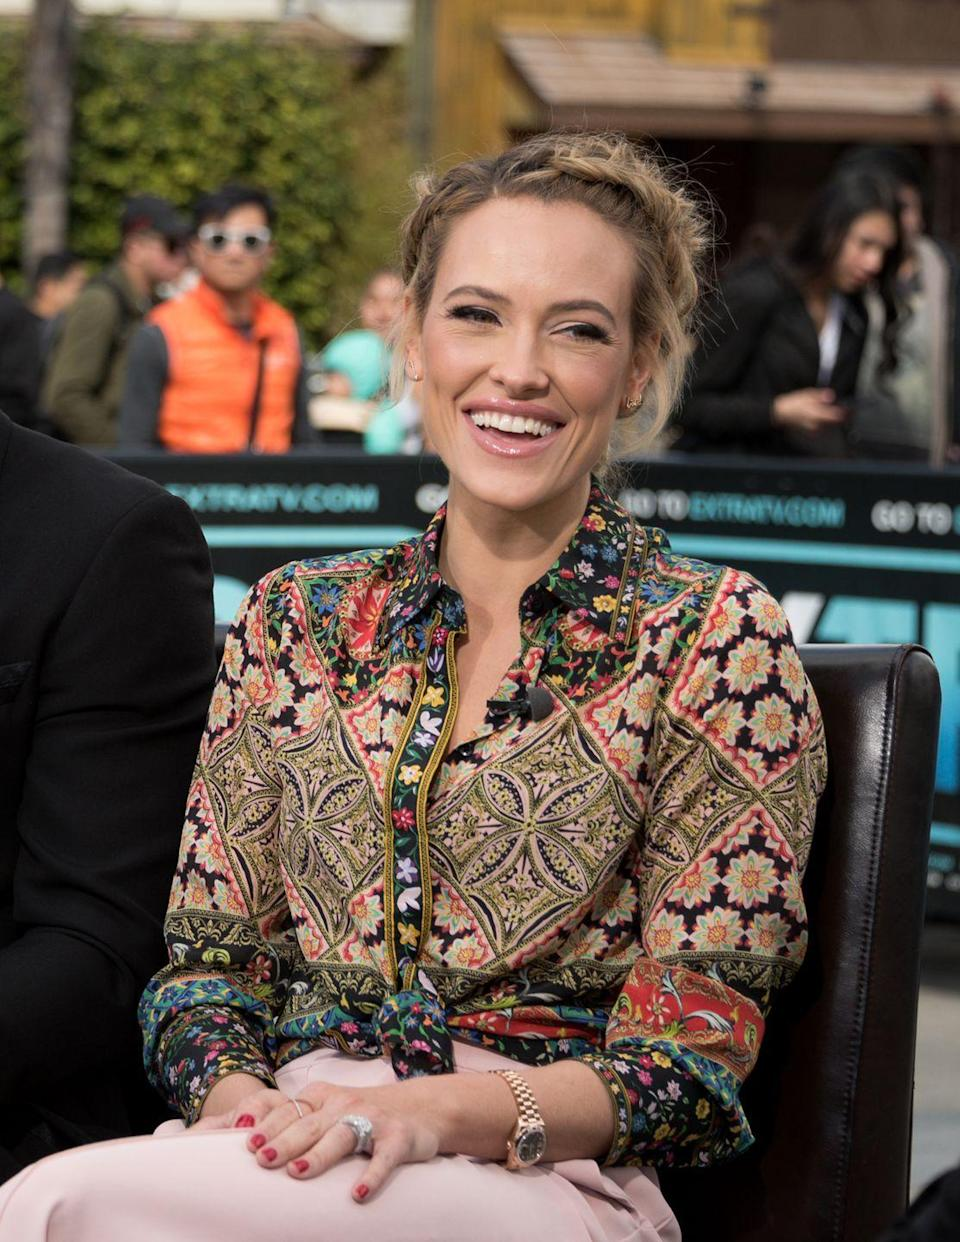 """<p>While pregnant with her first child, Peta didn't limit dessert to just the evenings. """"I really <a href=""""http://www.eonline.com/news/795386/ice-cream-for-breakfast-anything-goes-when-it-comes-to-peta-murgatroyd-s-pregnancy-cravings"""" rel=""""nofollow noopener"""" target=""""_blank"""" data-ylk=""""slk:crave cold ice cream"""" class=""""link rapid-noclick-resp"""">crave cold ice cream</a> for anytime of the day,"""" the <em>Dancing With the Stars</em> cast member told <a href=""""https://www.eonline.com/news/795386/ice-cream-for-breakfast-anything-goes-when-it-comes-to-peta-murgatroyd-s-pregnancy-cravings"""" rel=""""nofollow noopener"""" target=""""_blank"""" data-ylk=""""slk:E! News"""" class=""""link rapid-noclick-resp"""">E! News</a>. </p>"""